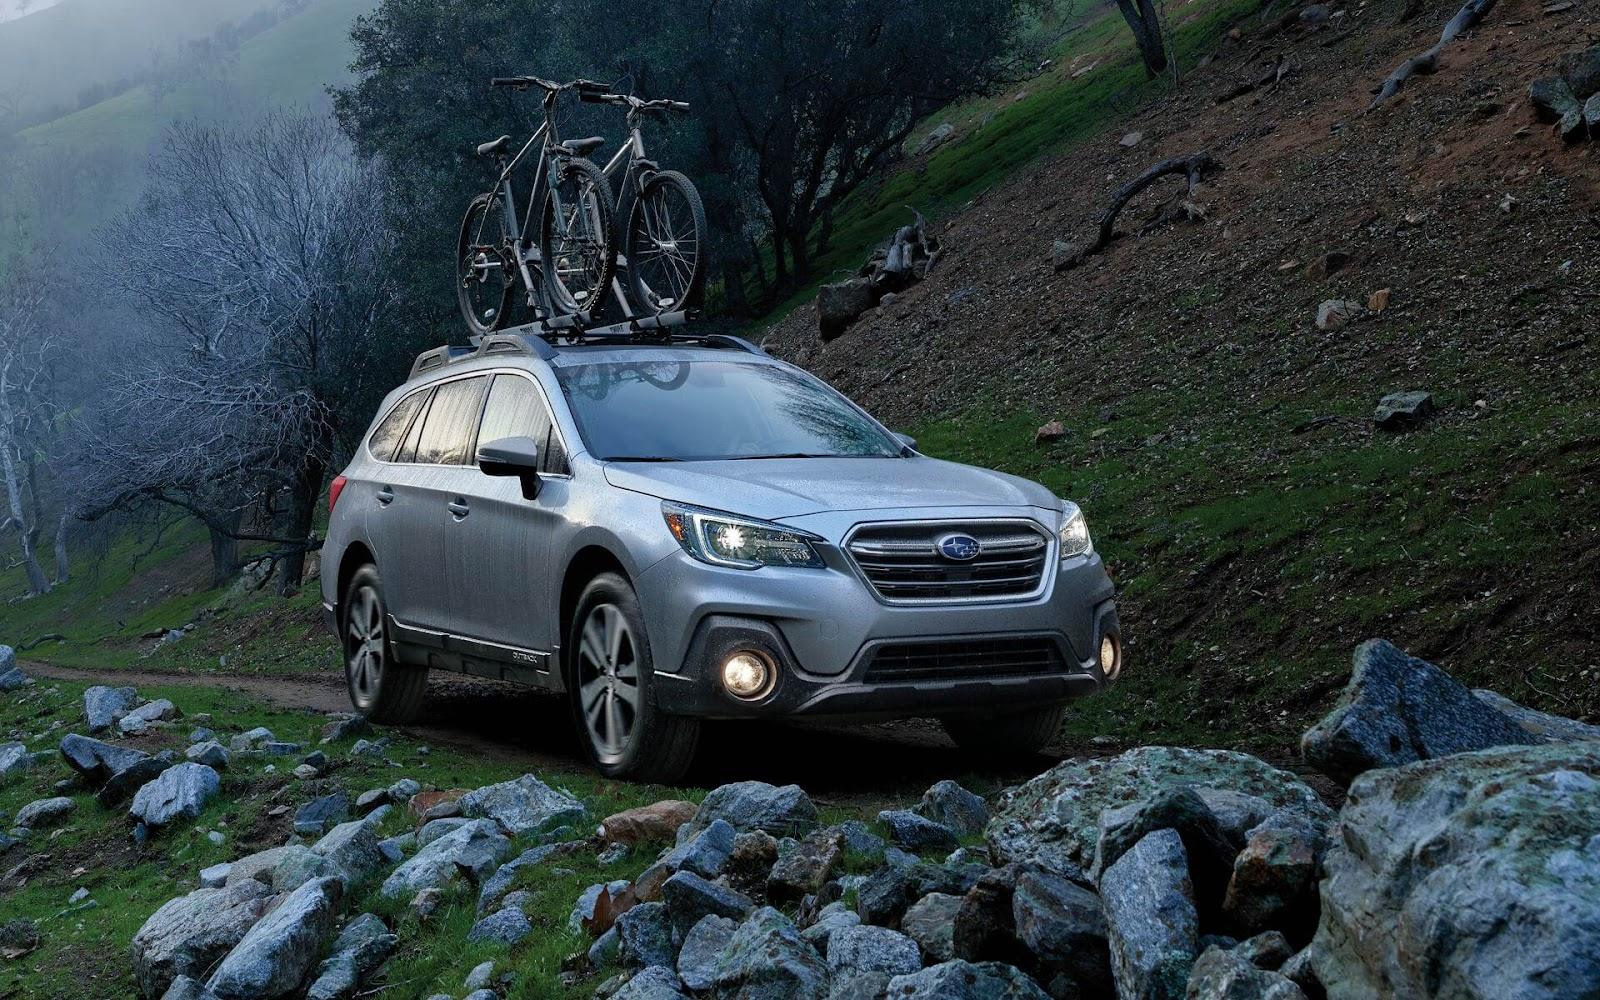 Subaru Outback Off Road >> Subaru Loves The Earth Reaches 1 Million Pieces Recycled